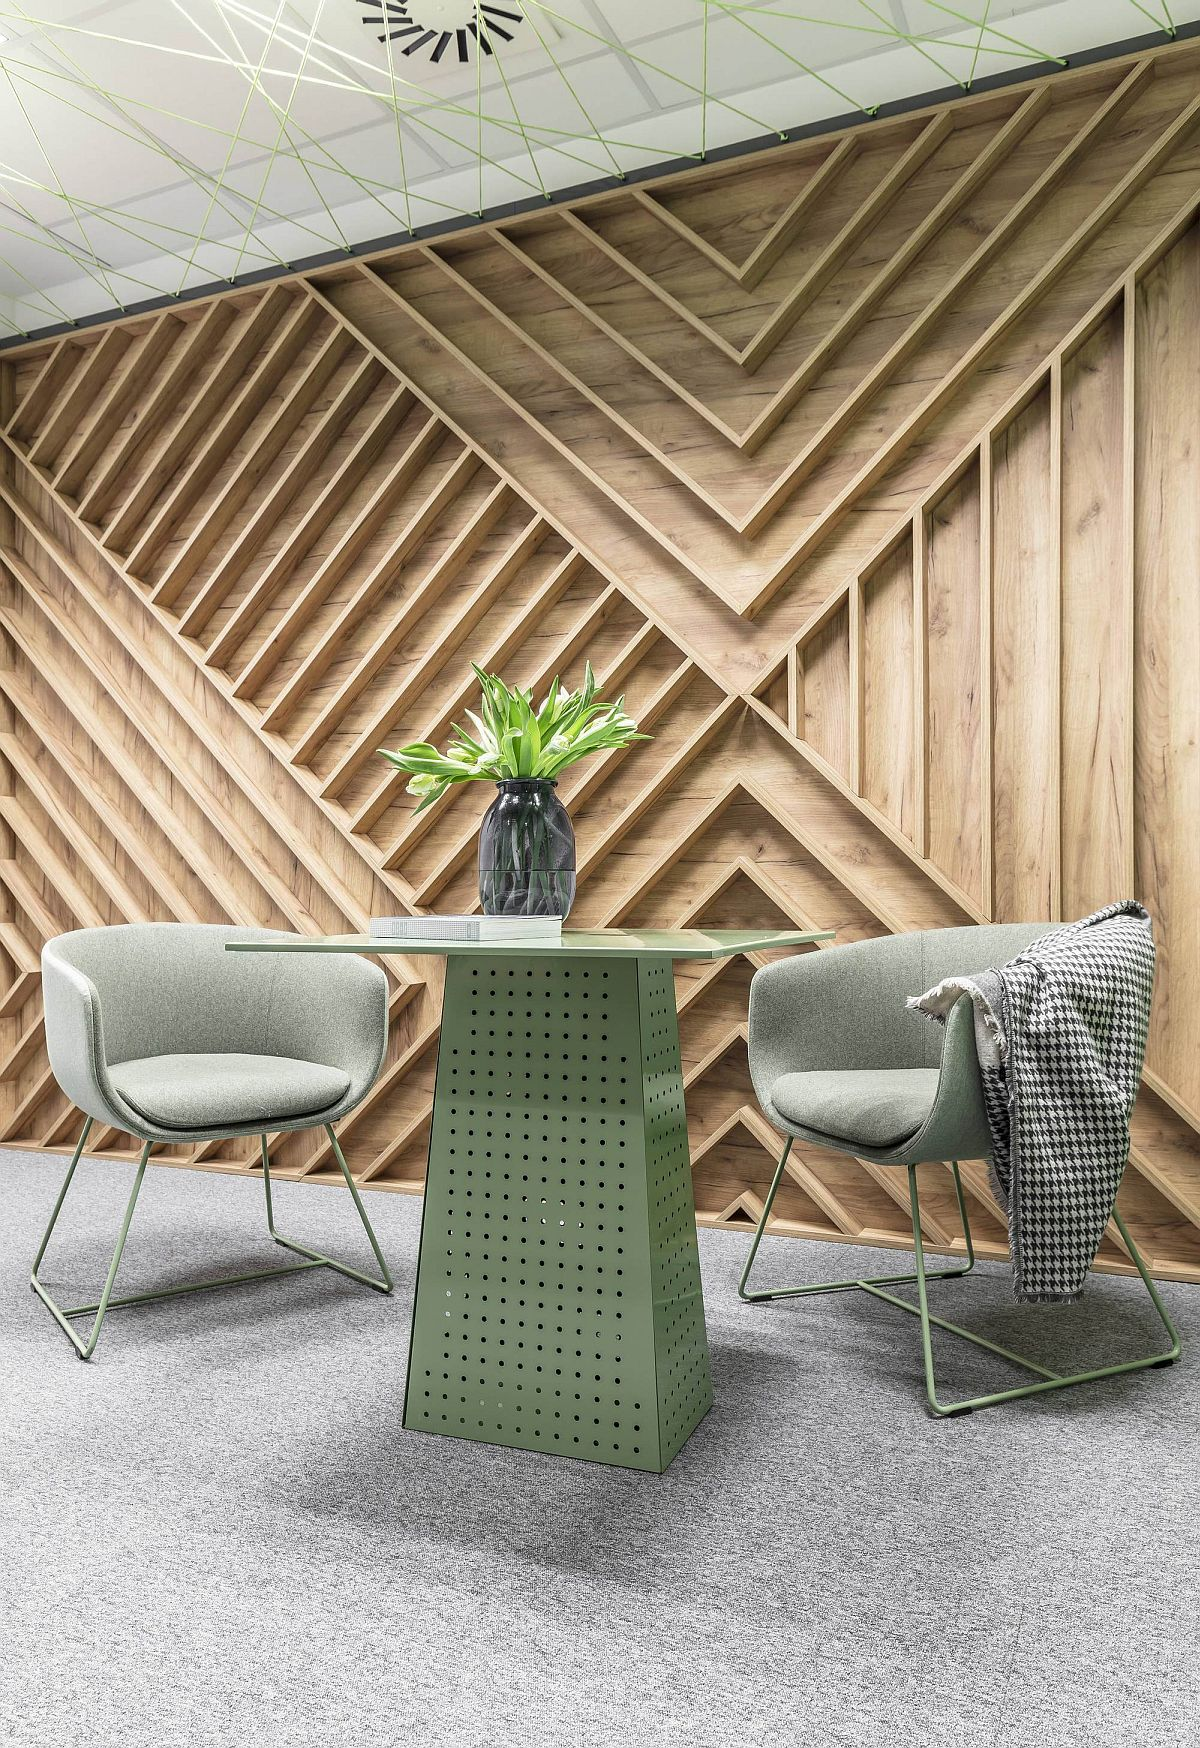 Patterns broght in by wooden walls and pastel hues create a beautiful office setting